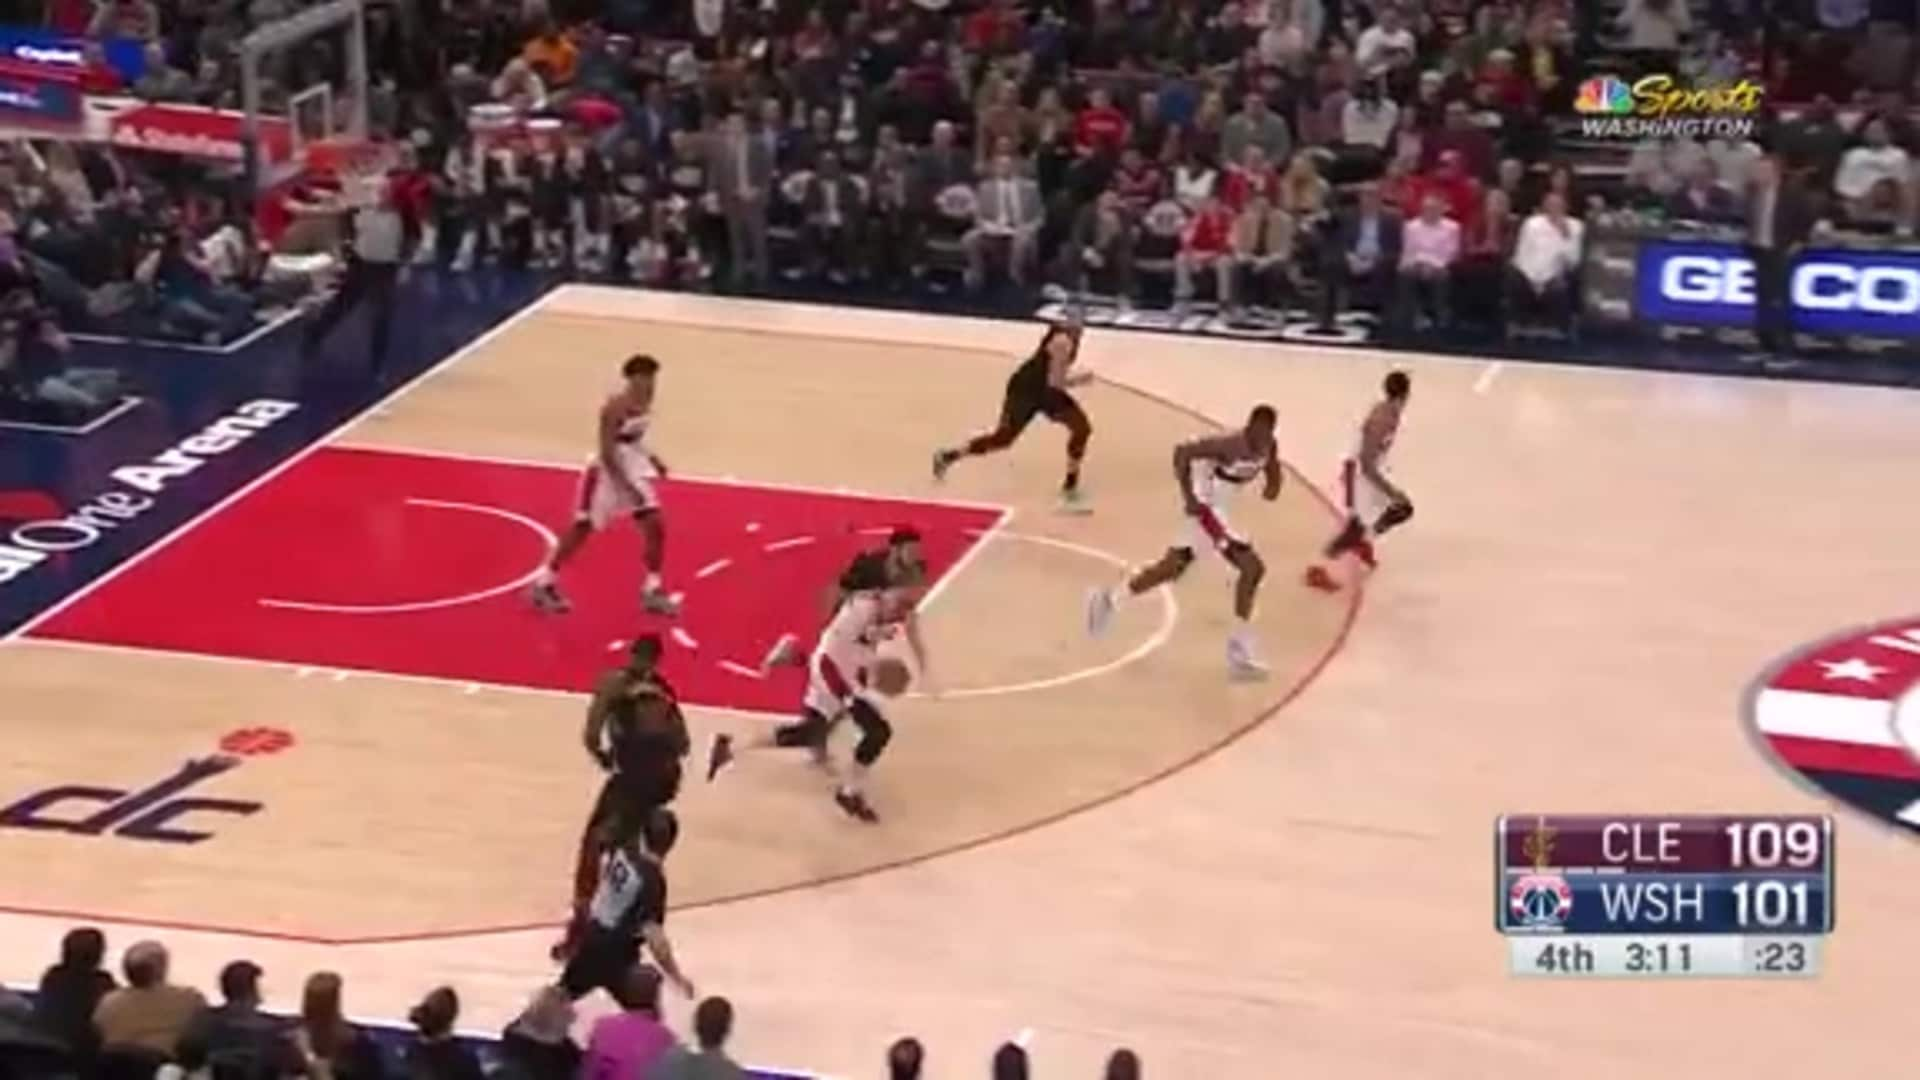 Highlights: Wizards vs. Cavaliers - 02/21/20